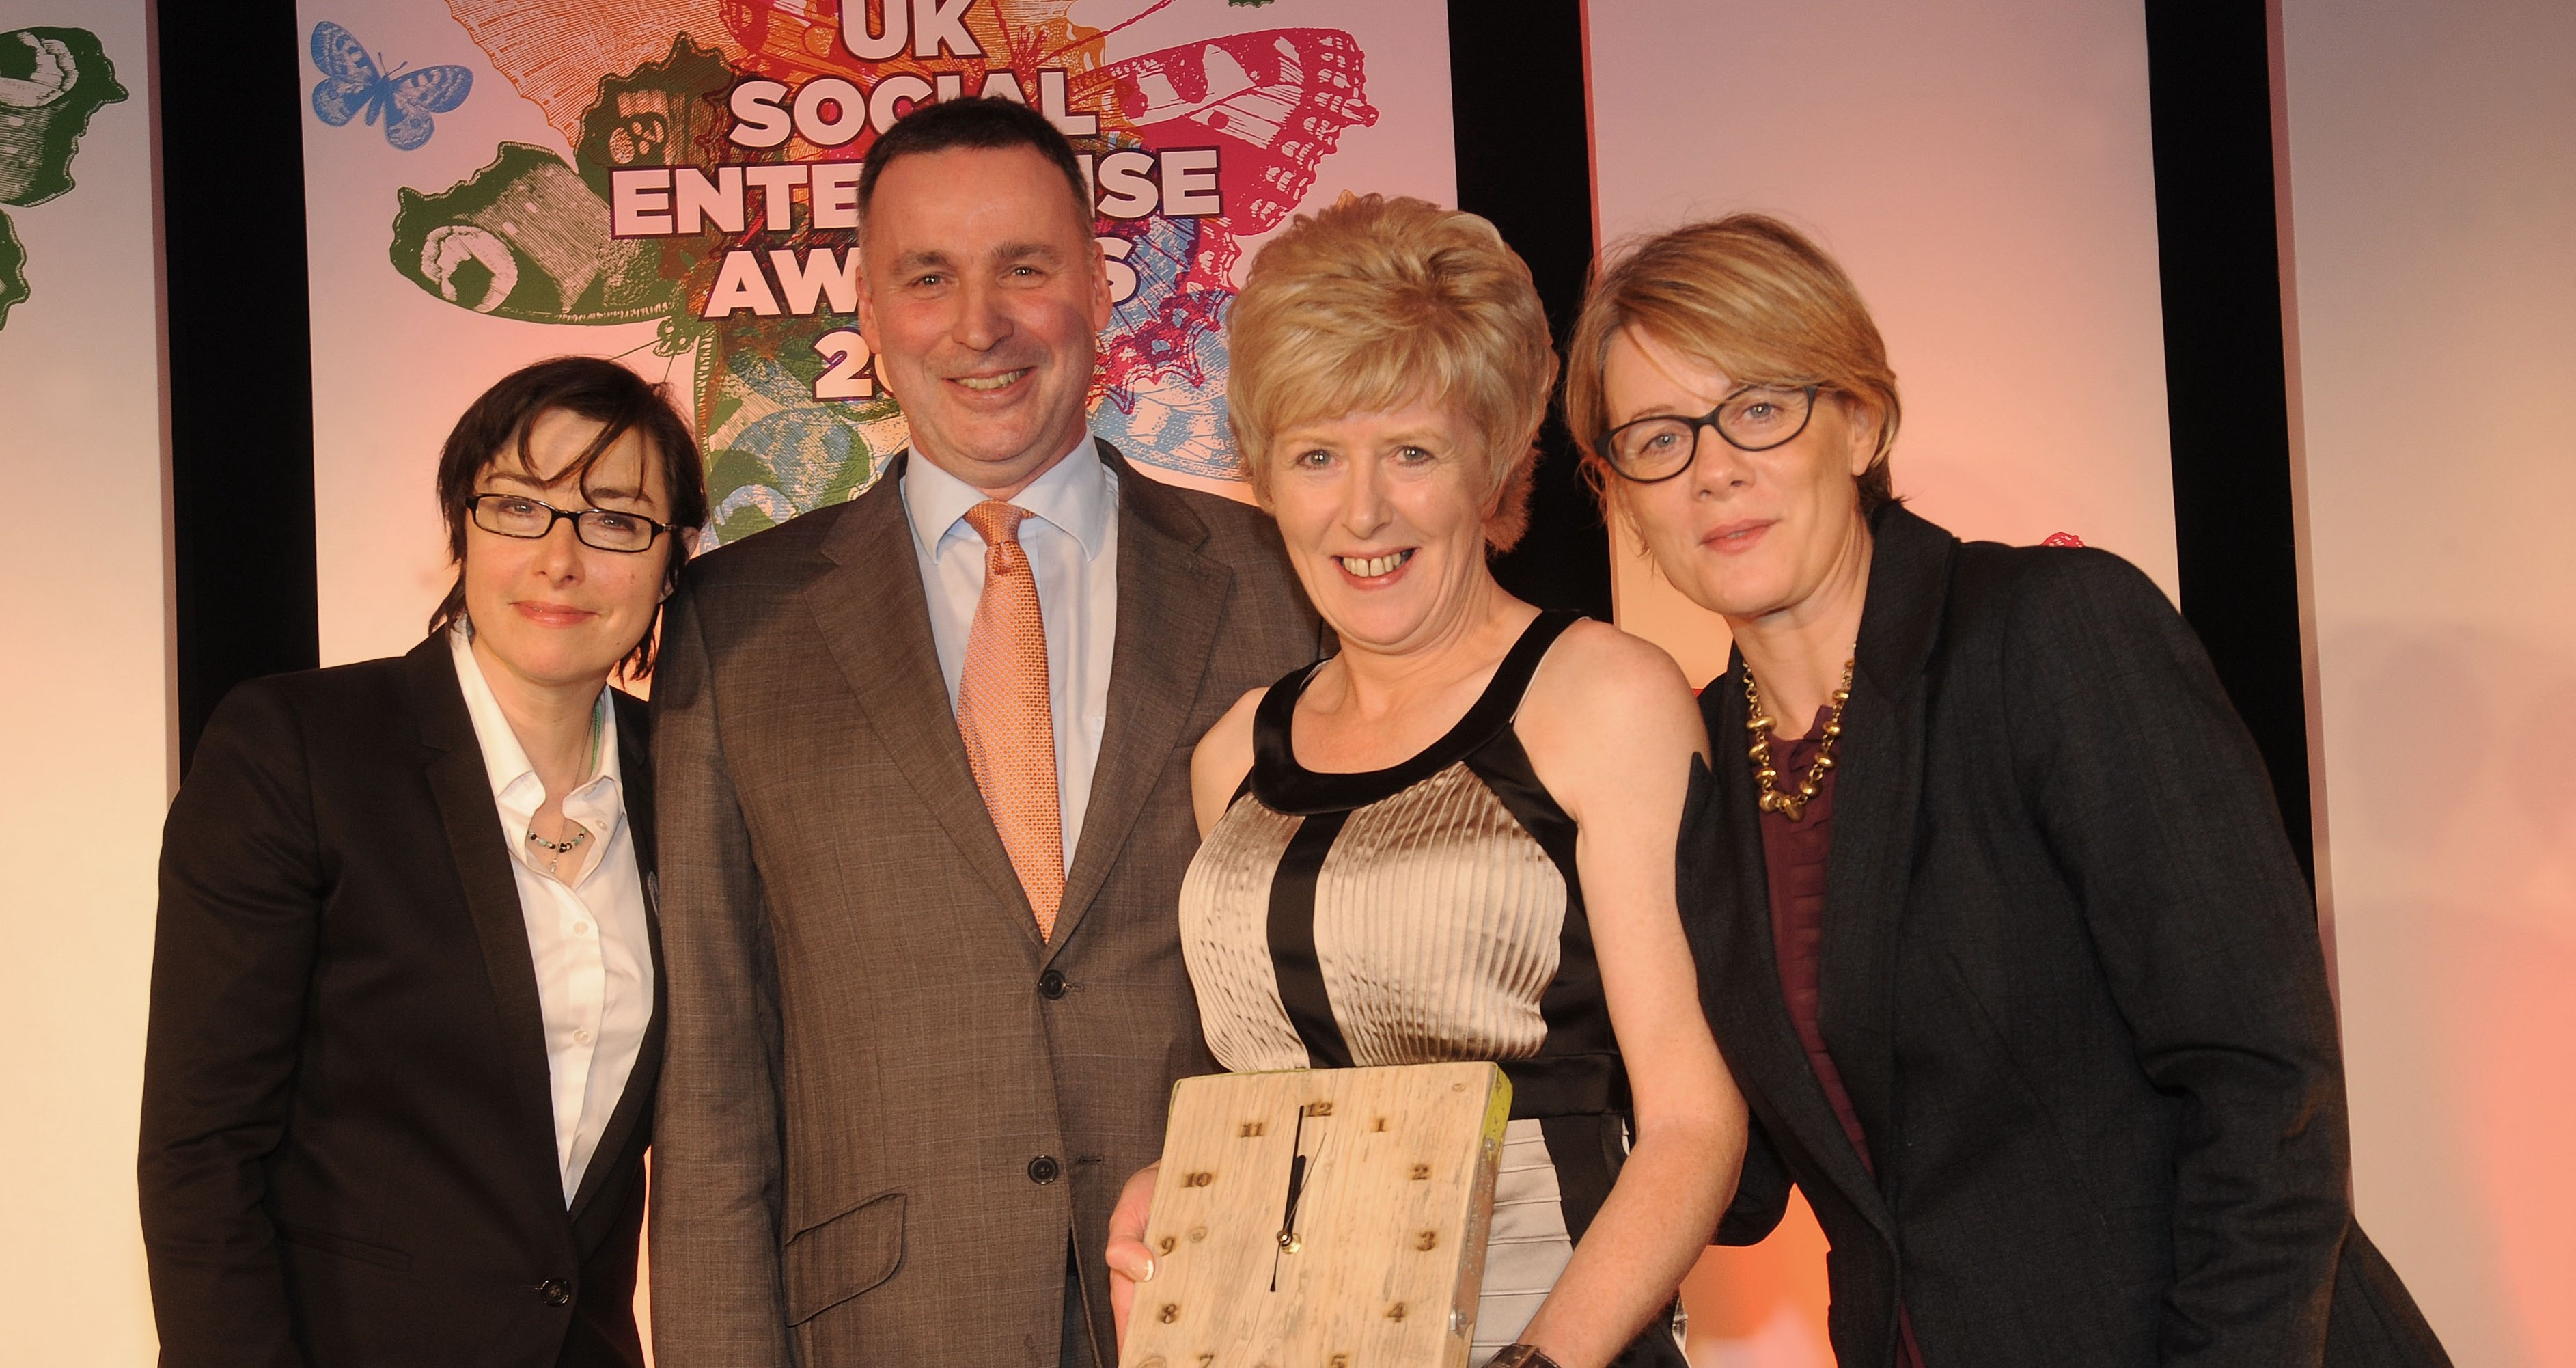 Leading Belfast Charity wins UK Social Enterprise of the Year